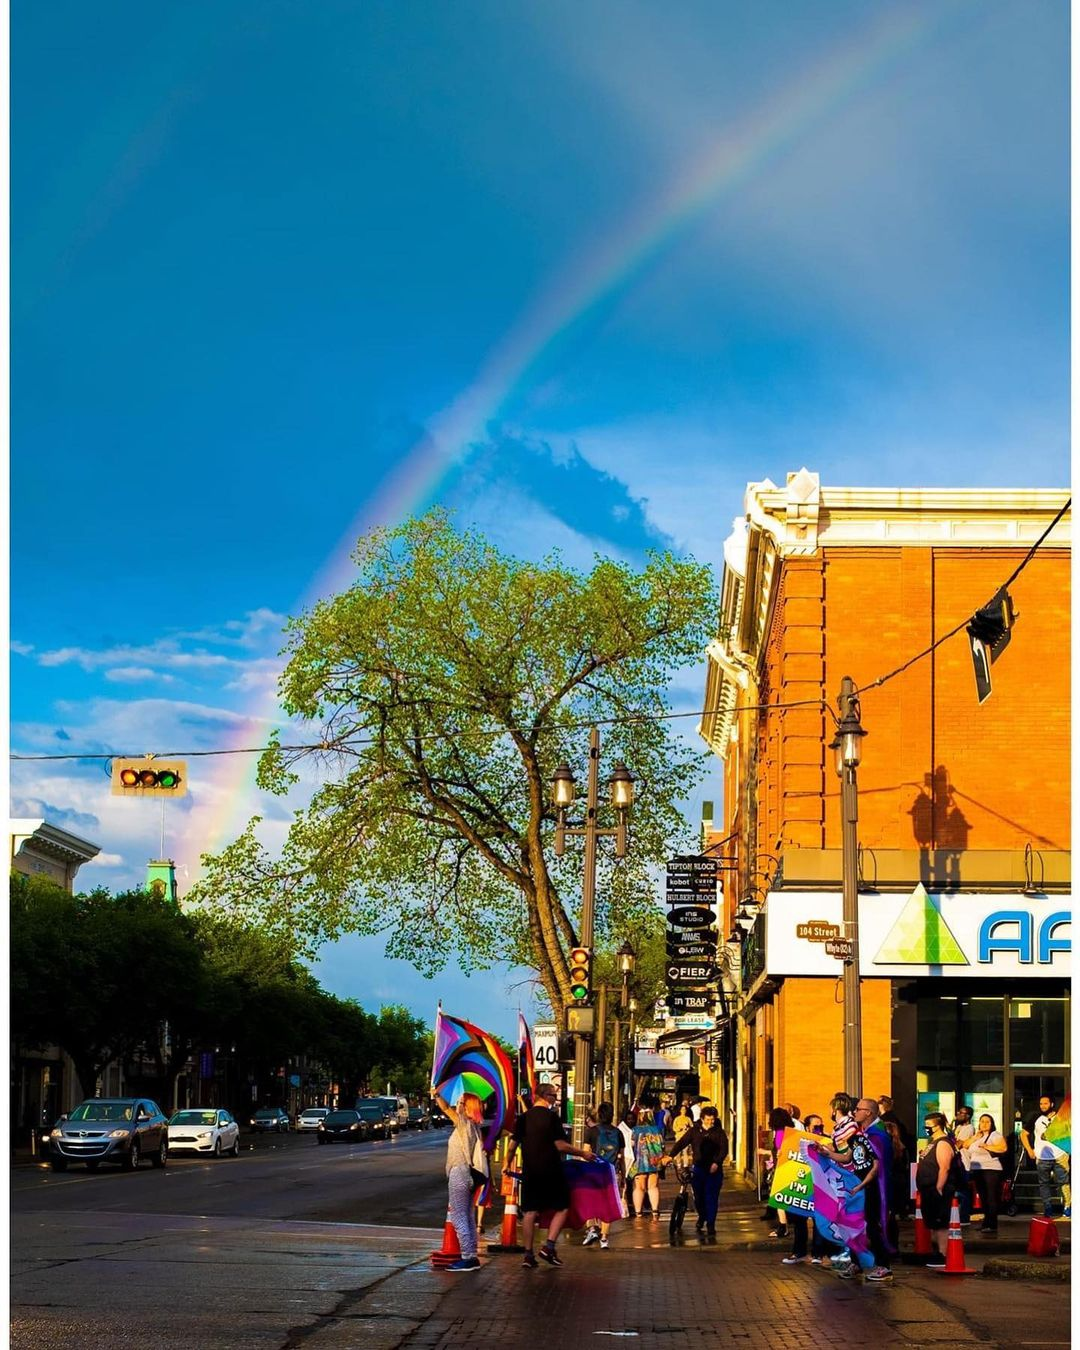 Protestors wave Pride Progress rainbow flags on Whyte Avenue with a rainbow above in the sky